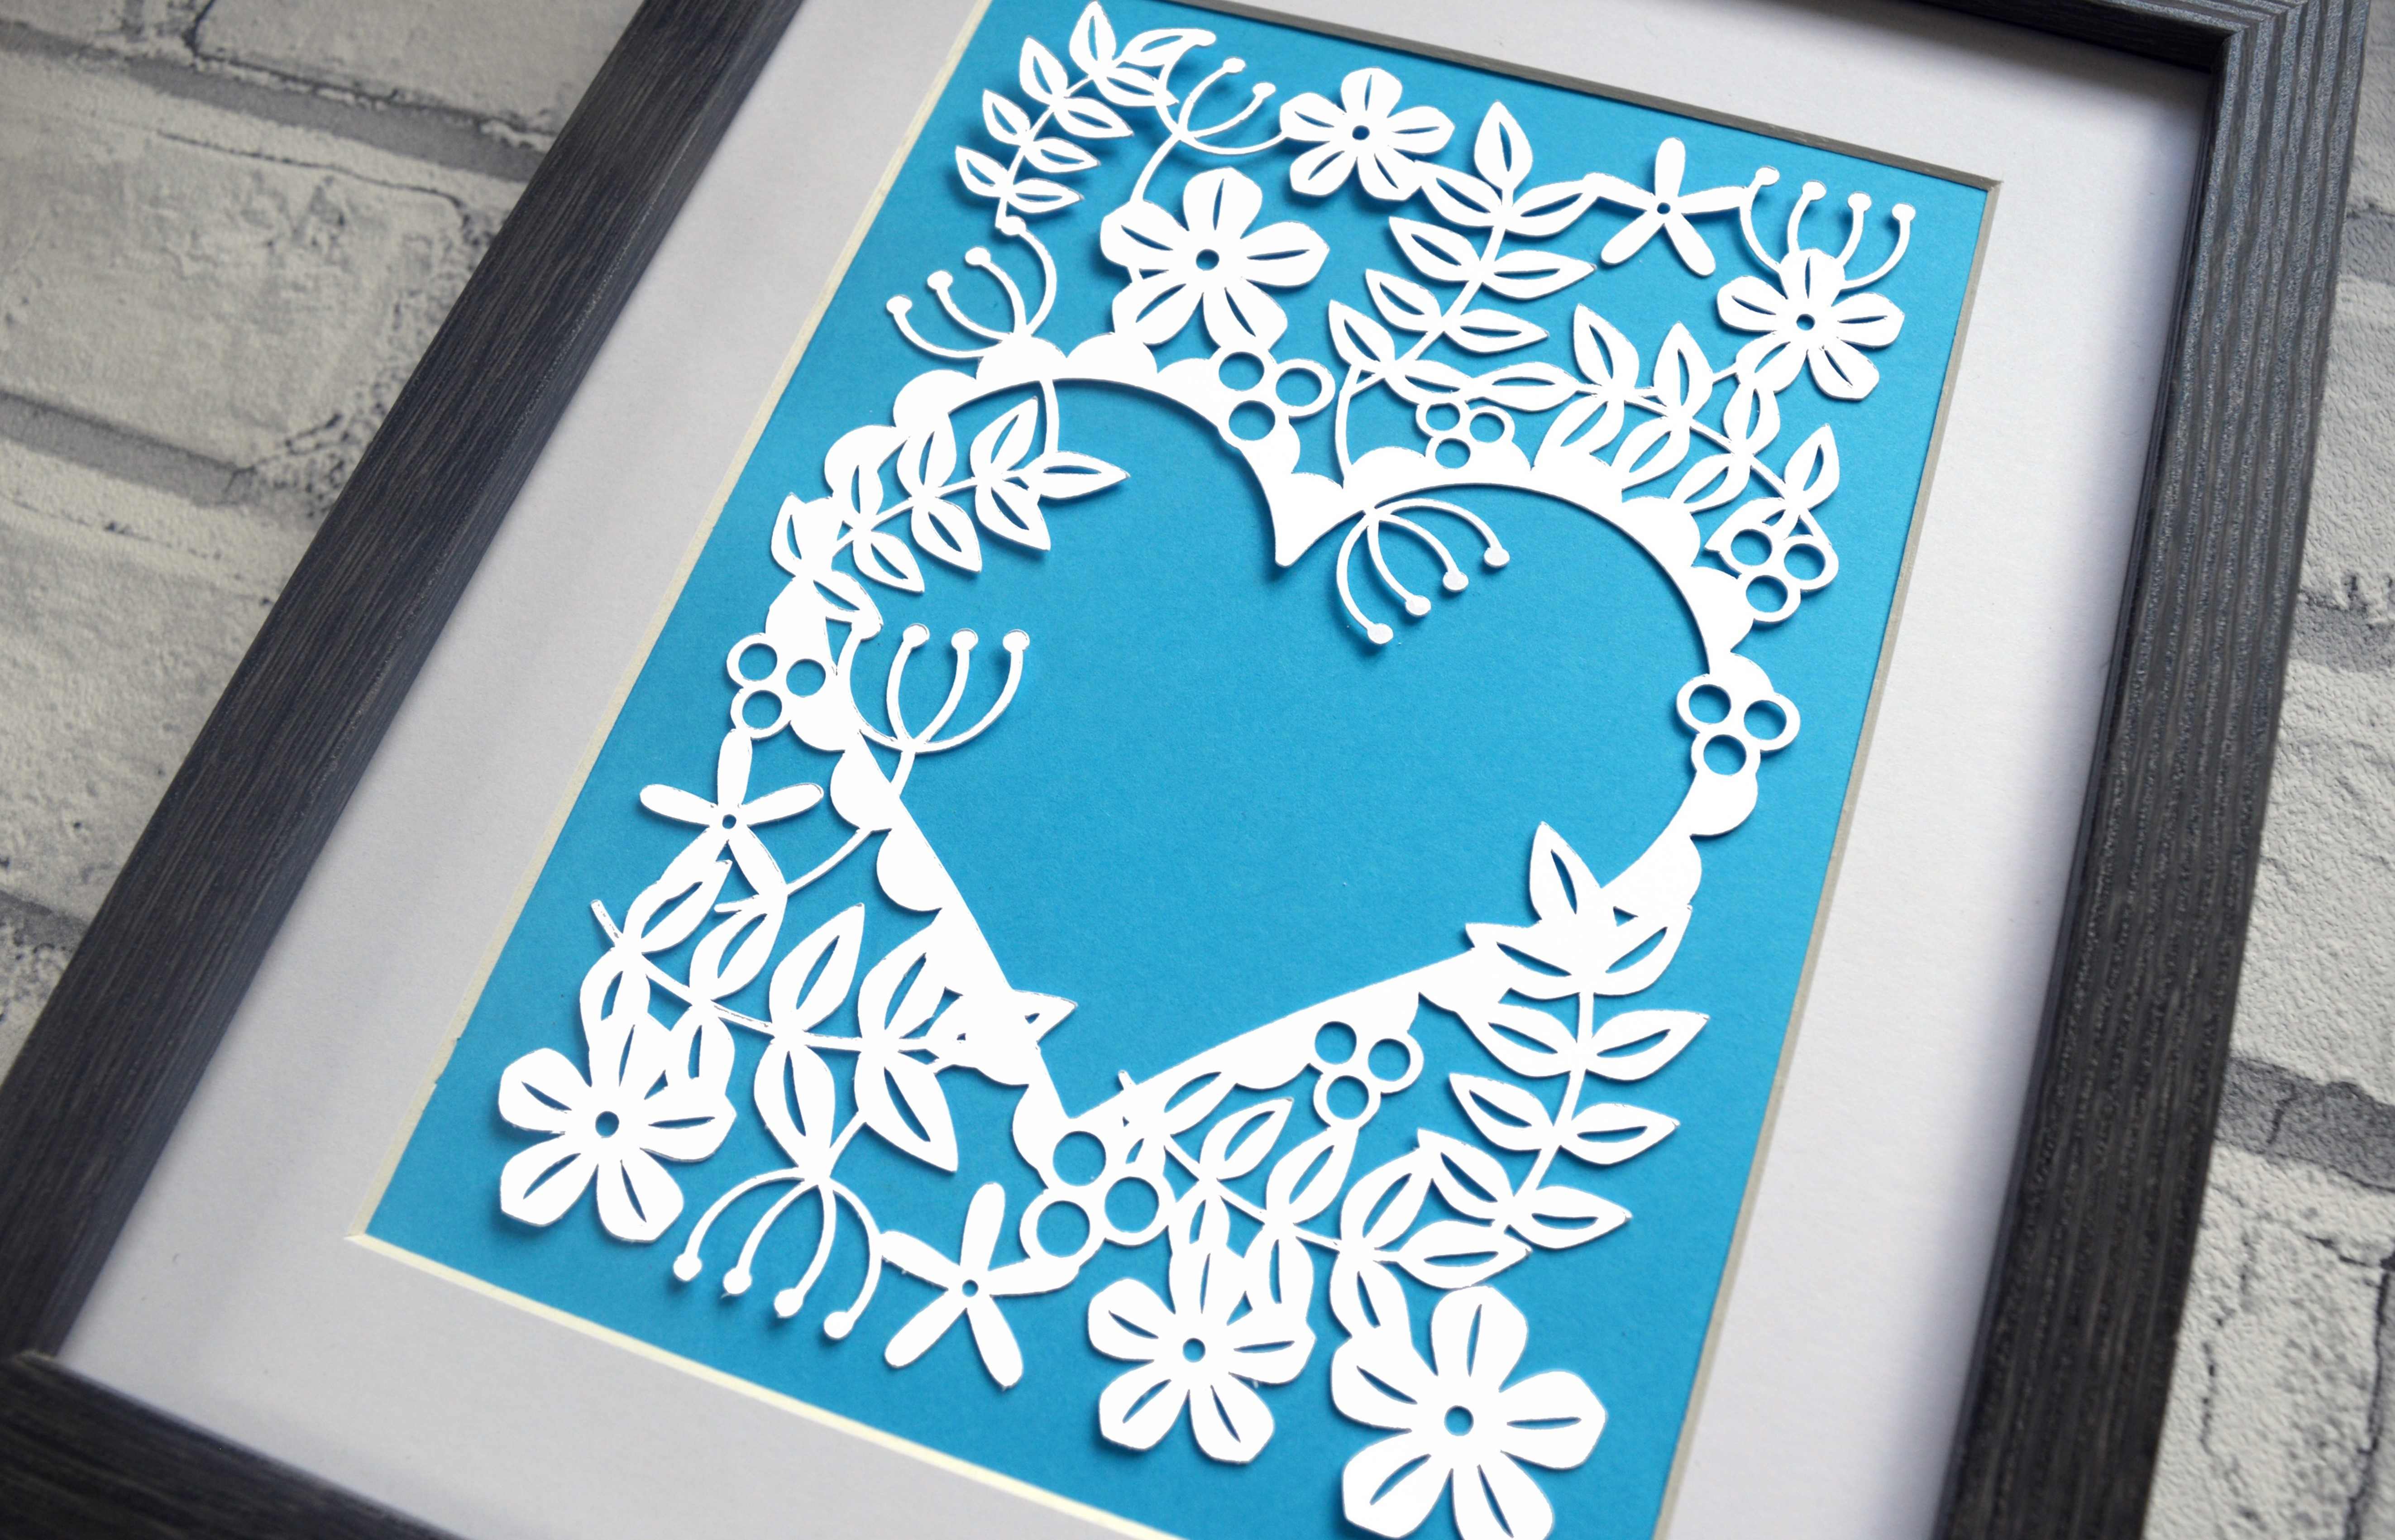 Heart Of Flowers Paper Cut SVG / DXF / EPS File example image 1